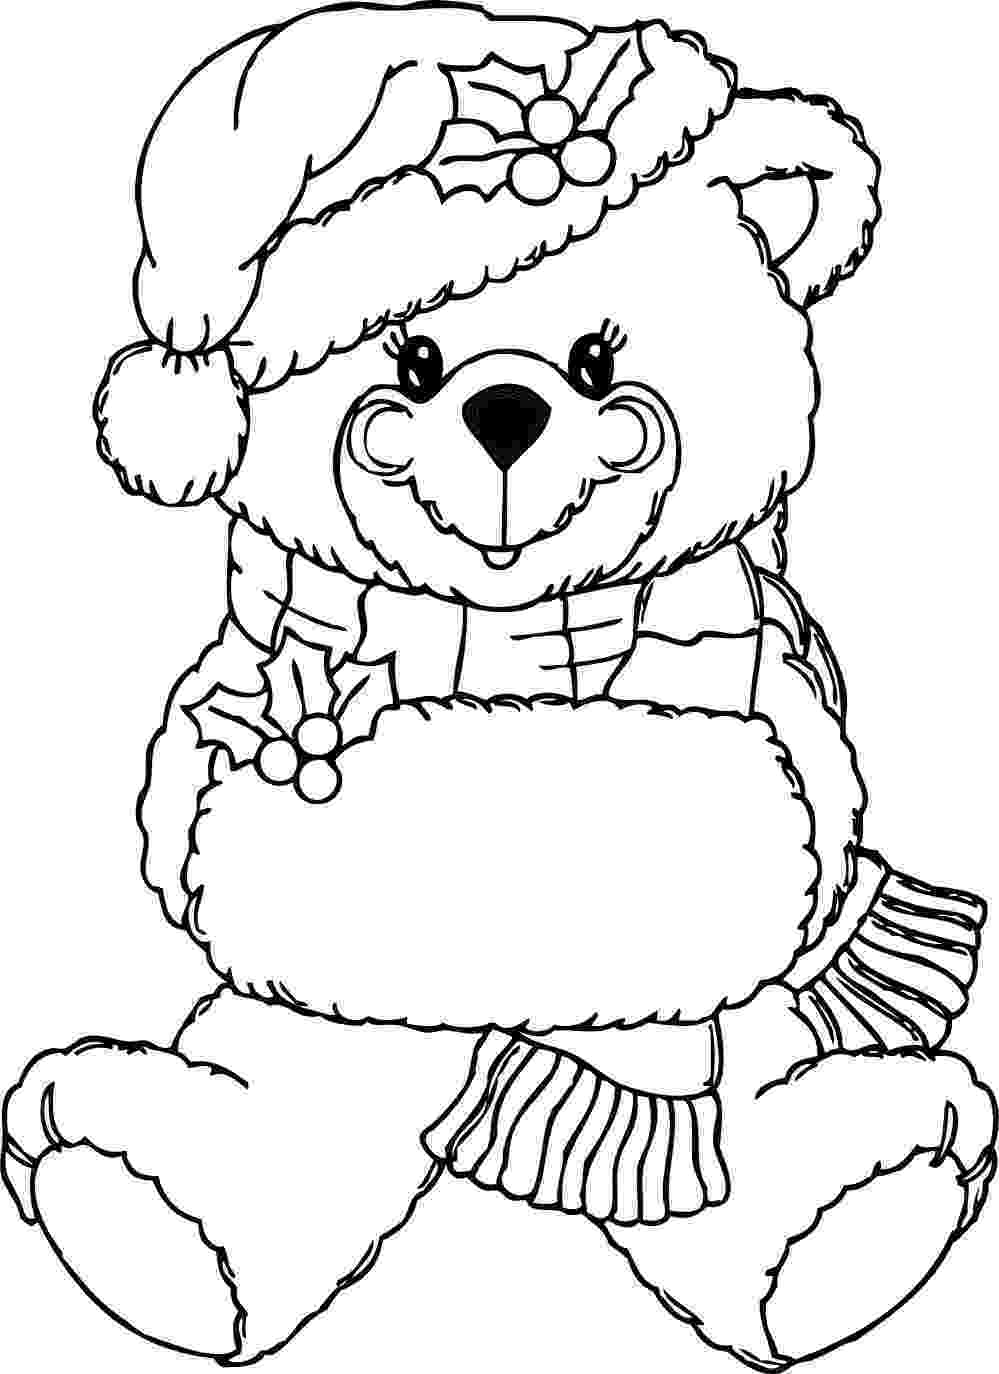 colouring pages of teddy bear printable teddy bear coloring pages for kids cool2bkids teddy of pages colouring bear